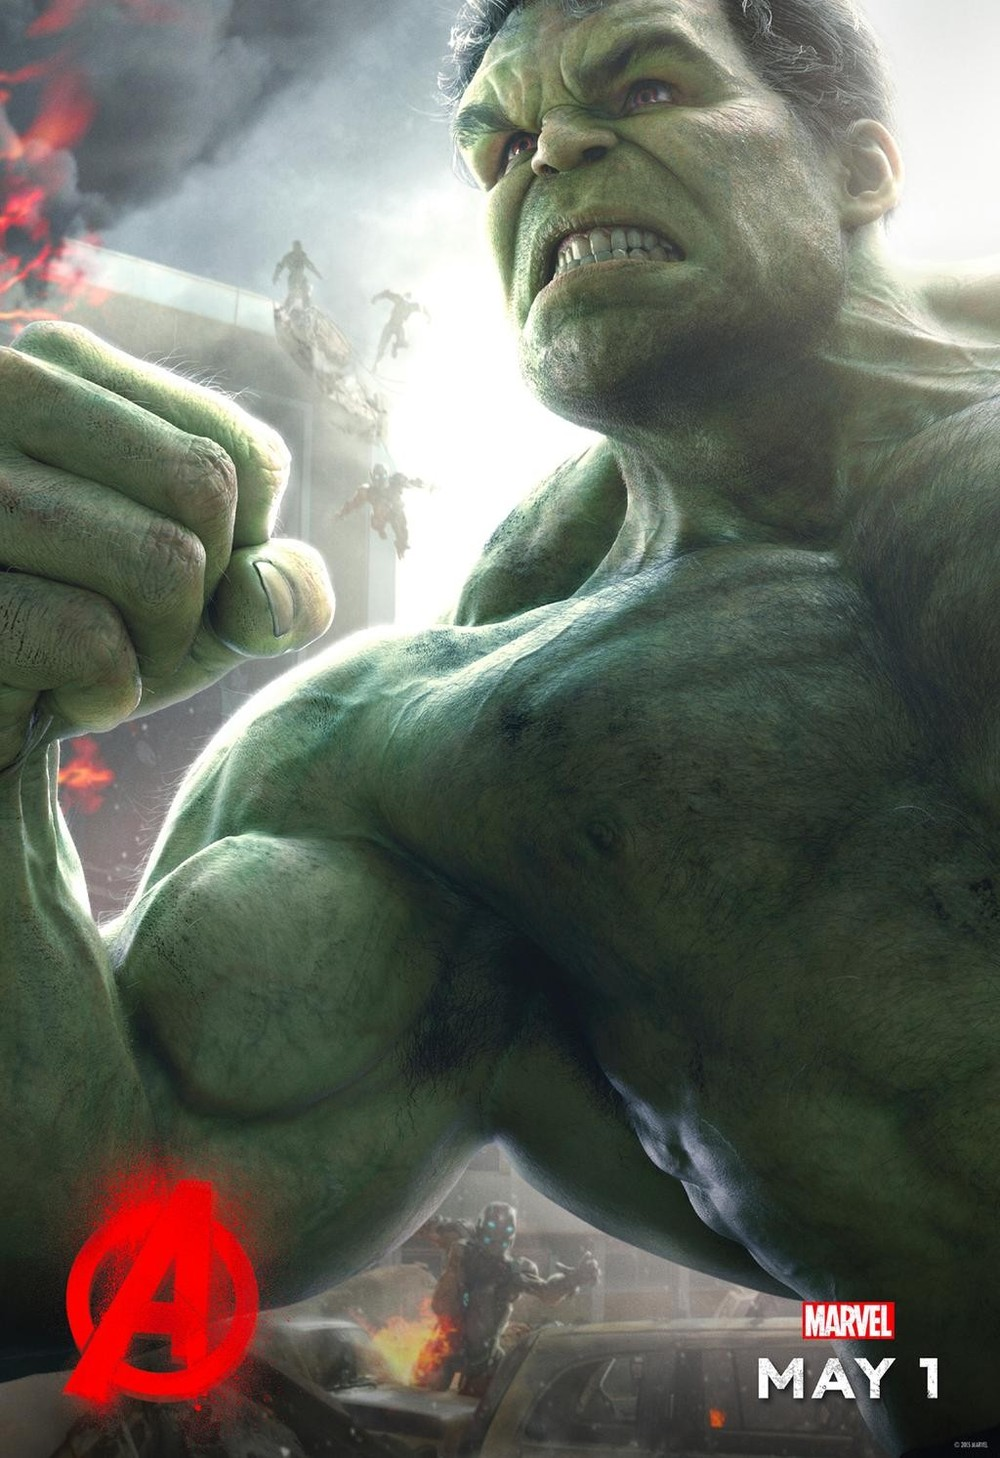 MarvelS The Avengers 2 Age Of Ultron Kinox.To